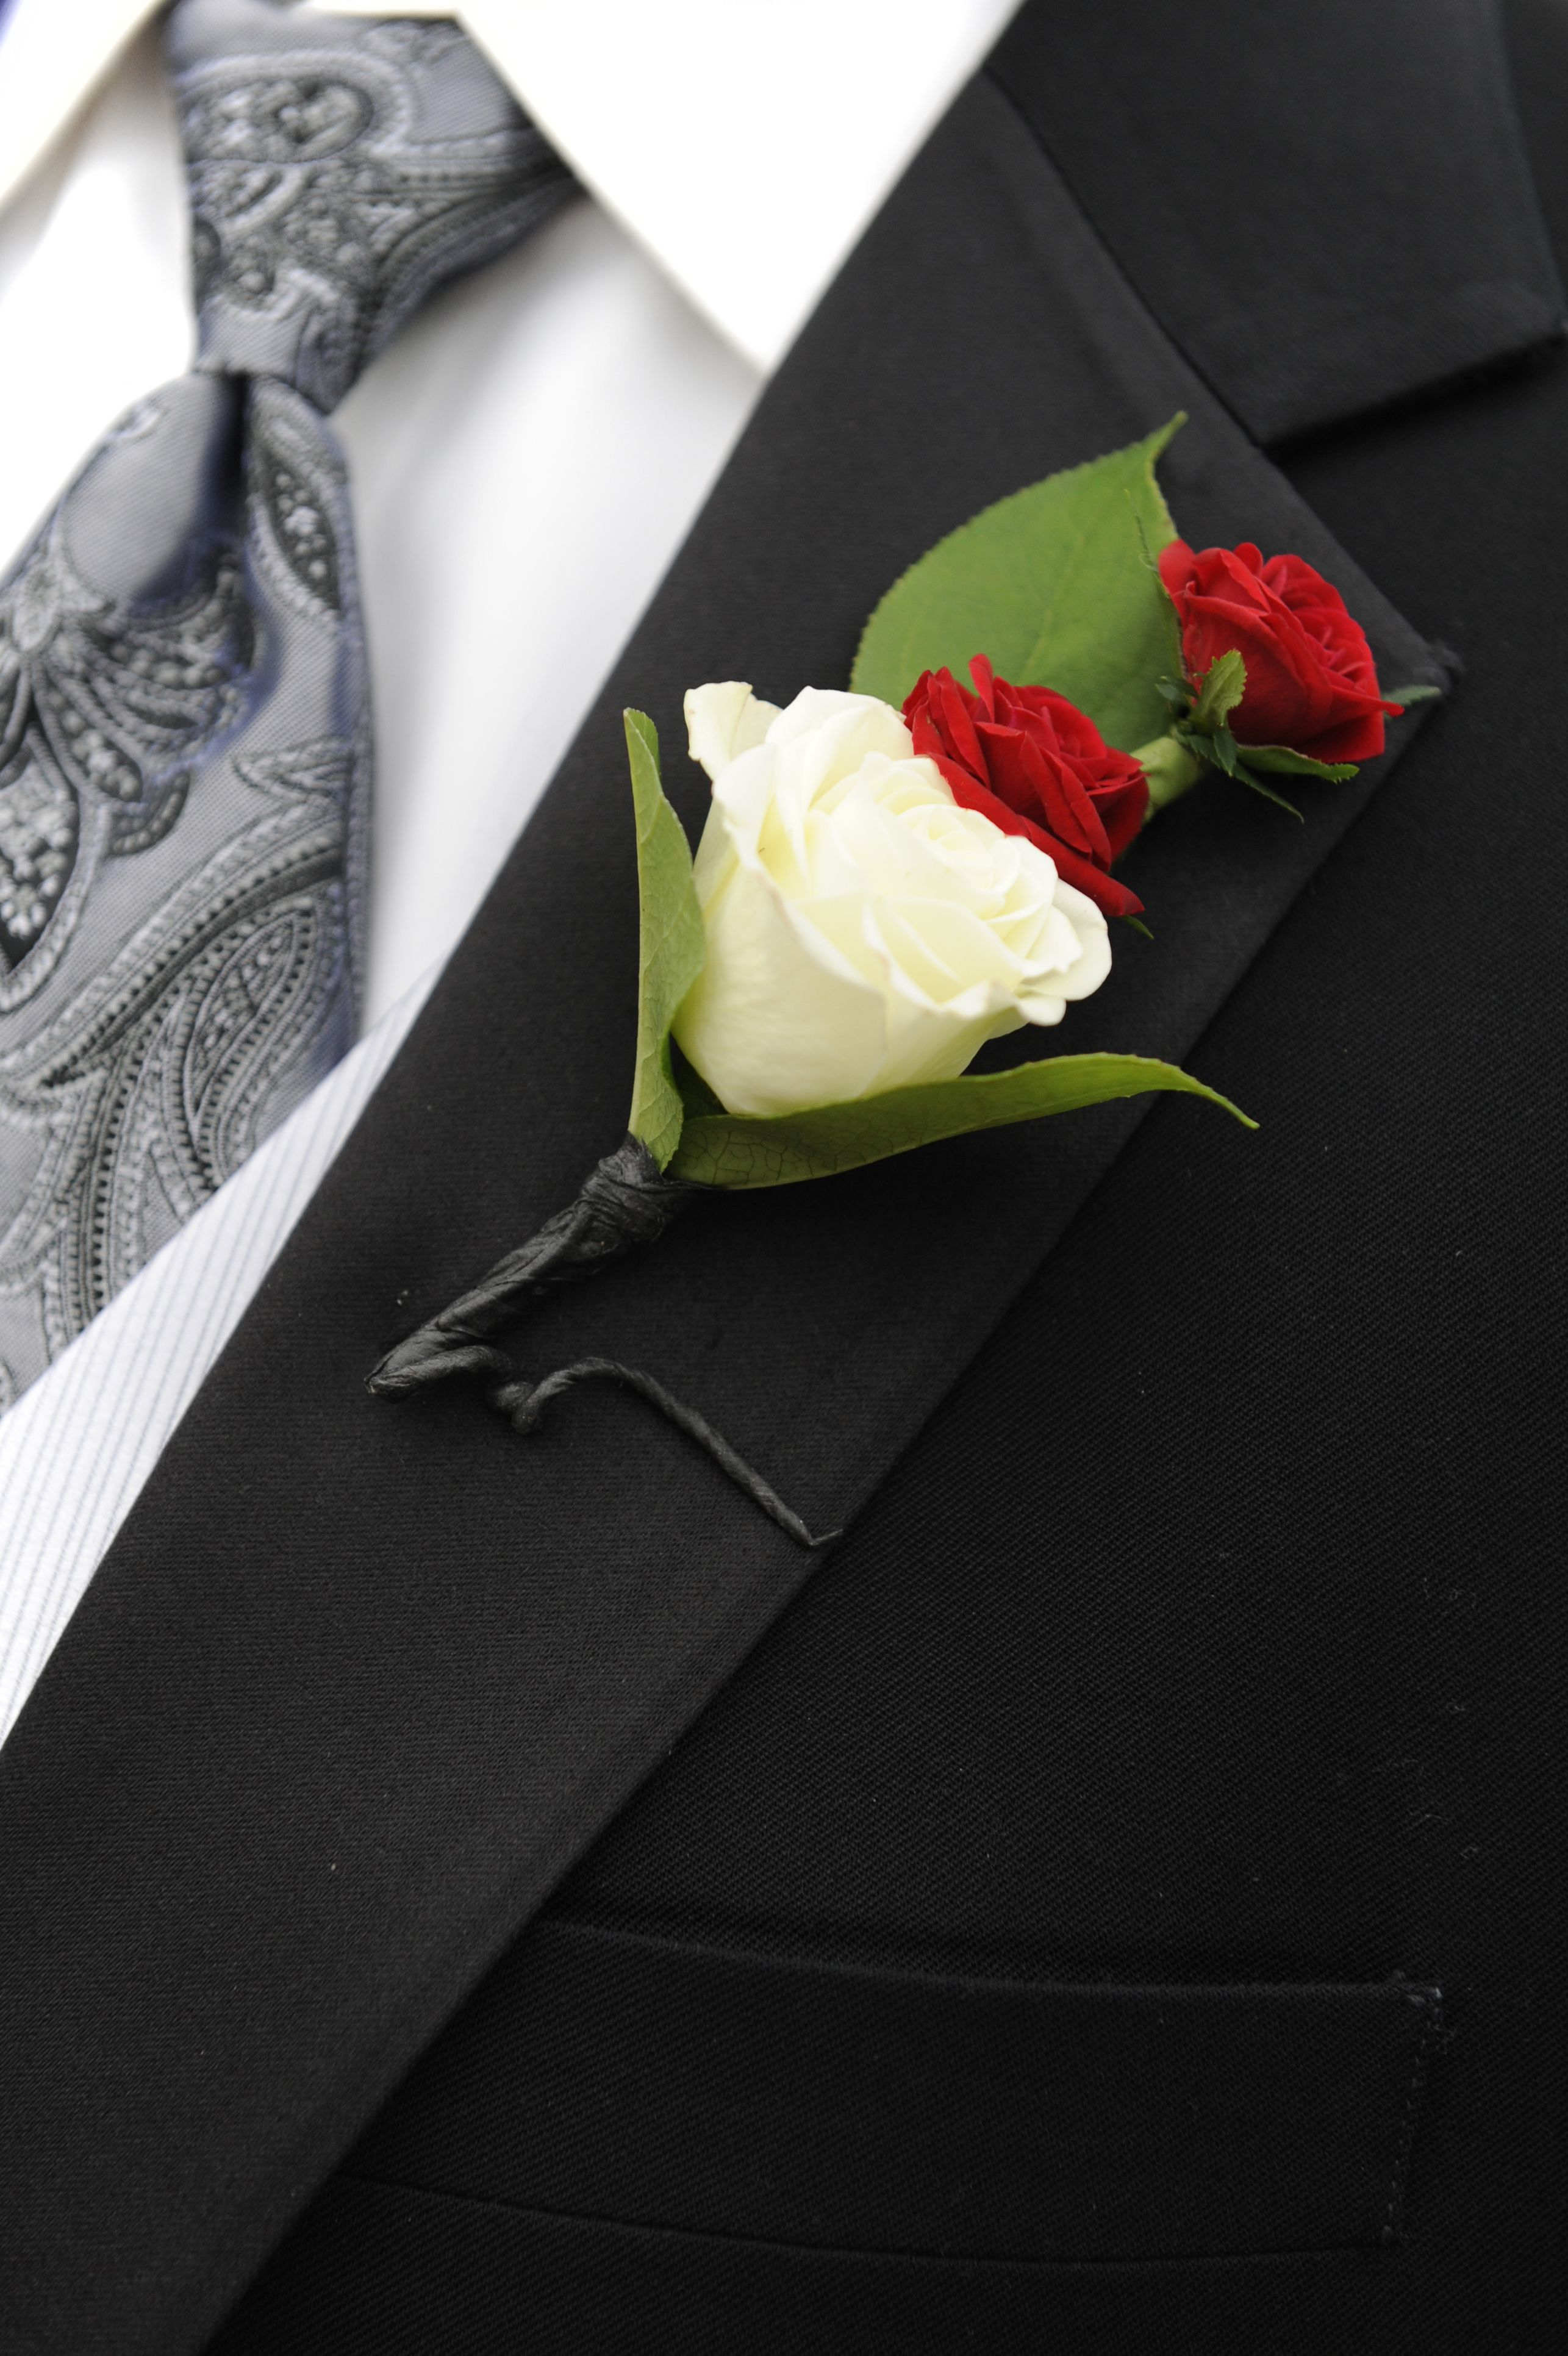 Groom Boutonniere Red Rose White Flower Copyright Tamimcinnis